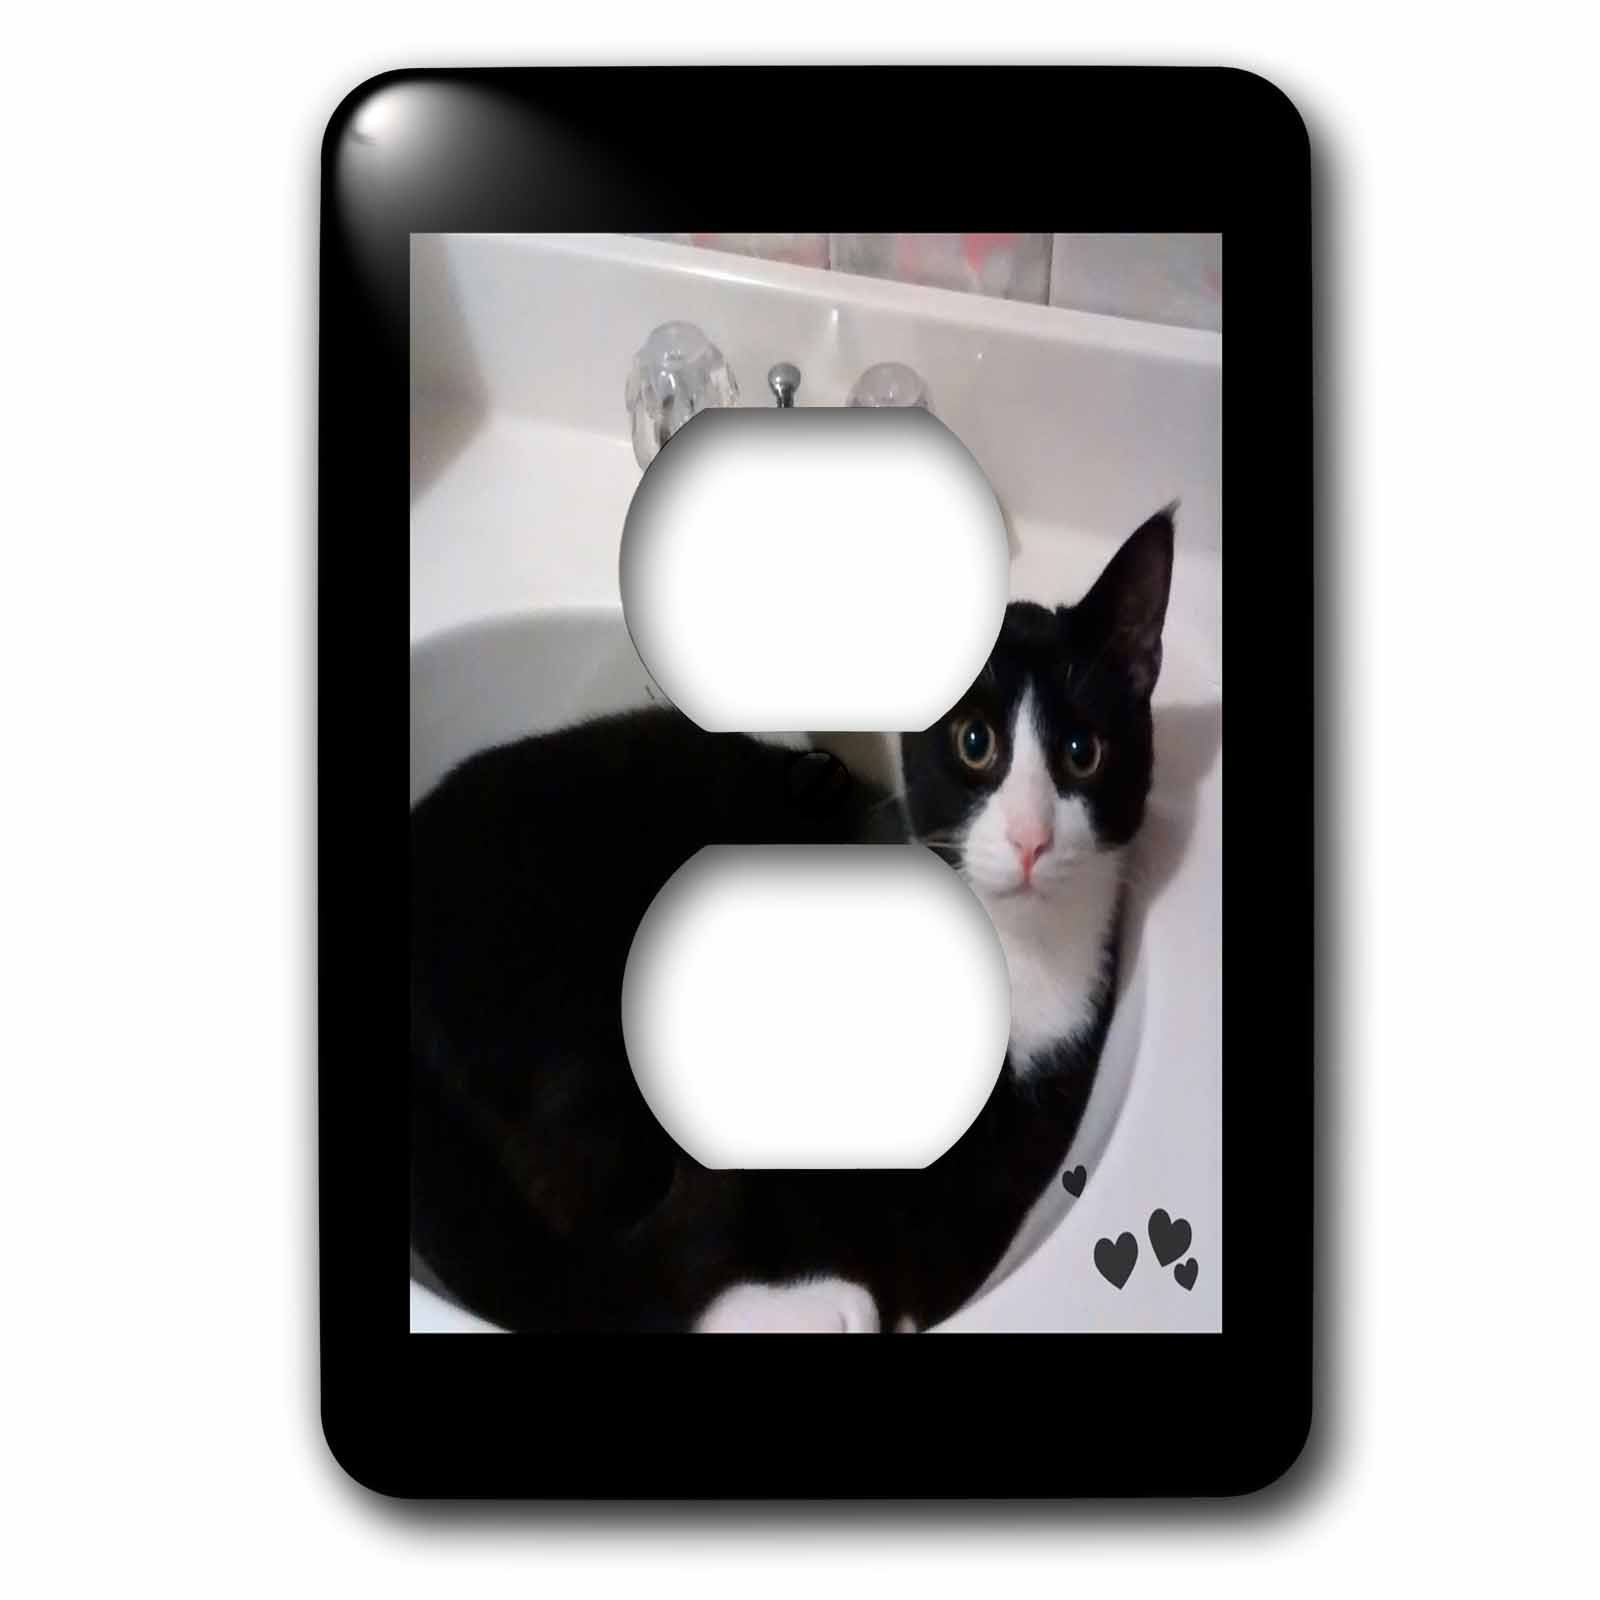 Charlyn Woodruff - CW Designs - Cat Photography - Cute Black White Tux Cat Curled up in Sink Photo - Light Switch Covers - 2 plug outlet cover (lsp_242428_6) by 3dRose